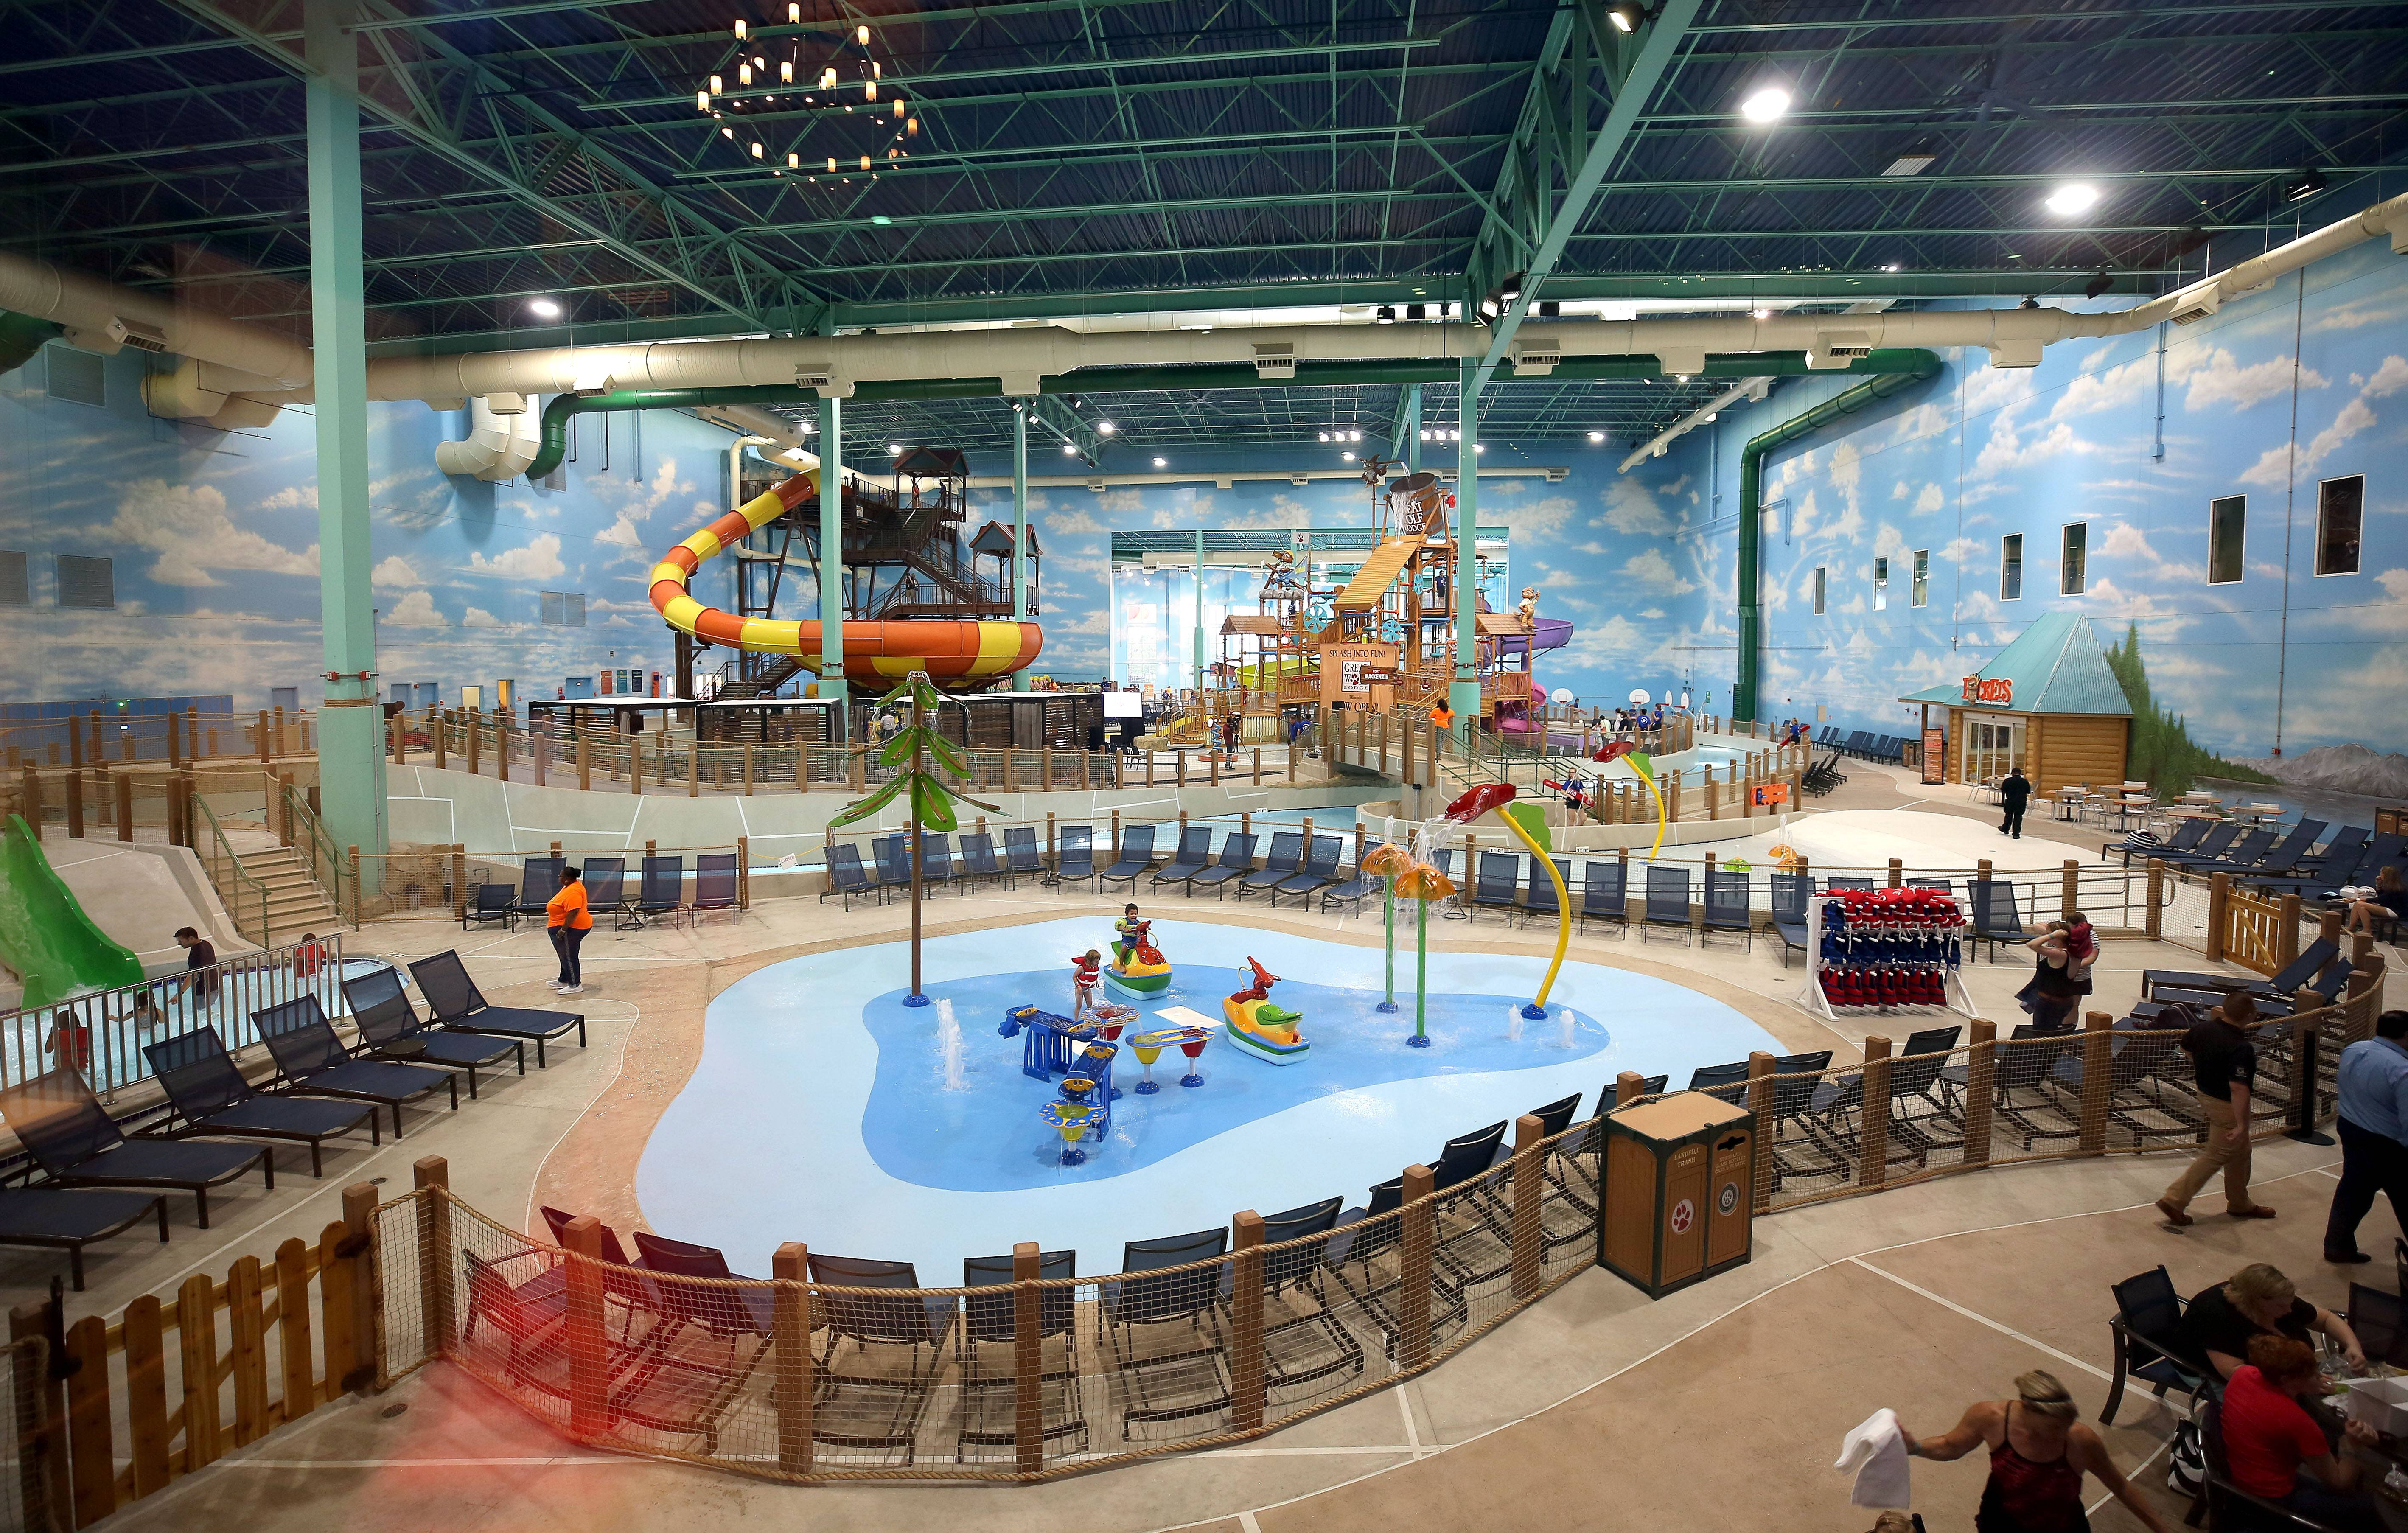 The Great Wolf Lodge invested $65 million to transform a water park in Gurnee, opening earlier this year.